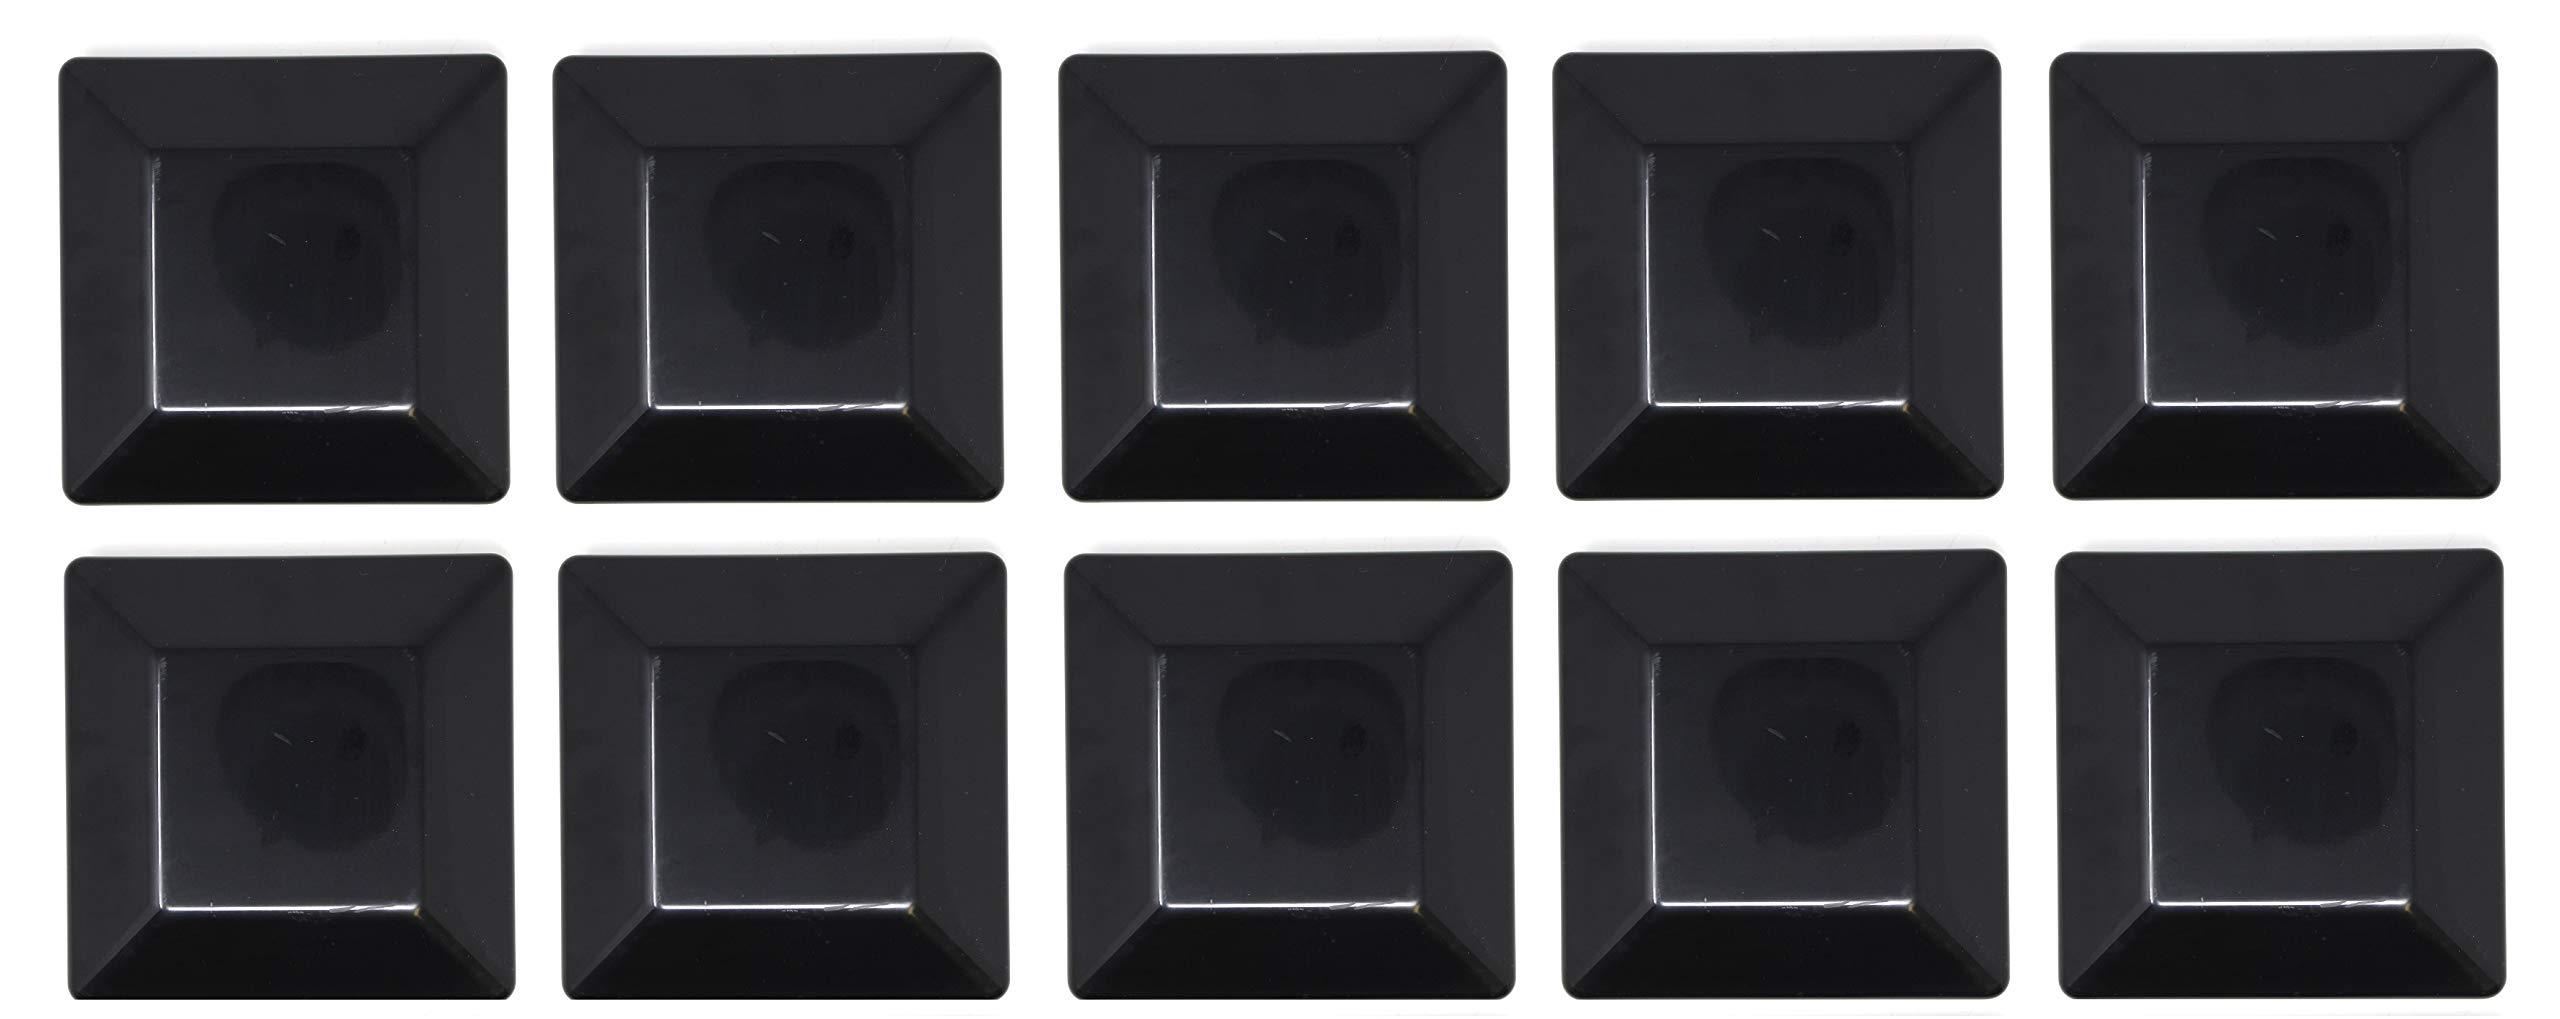 10 PACK-BLACK-6X6 FENCE POST PLASTIC CAP-(5 5/8 X 5 5/8) Pressure Treated Wood Made In USA by JSP Manufacturing